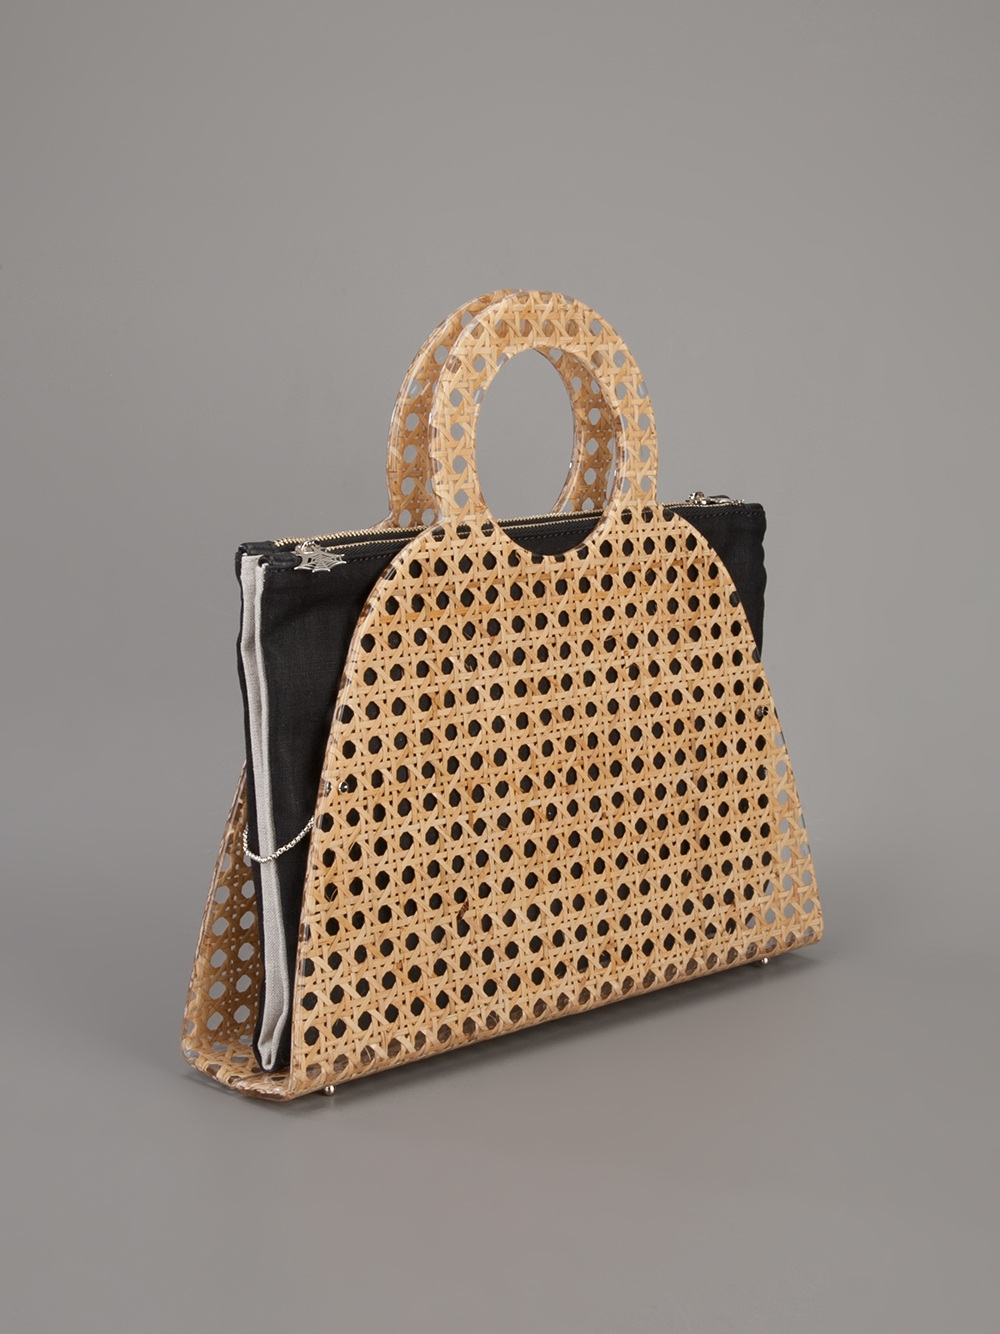 Charlotte Olympia Zehava Wicker Tote in Nude (Natural)